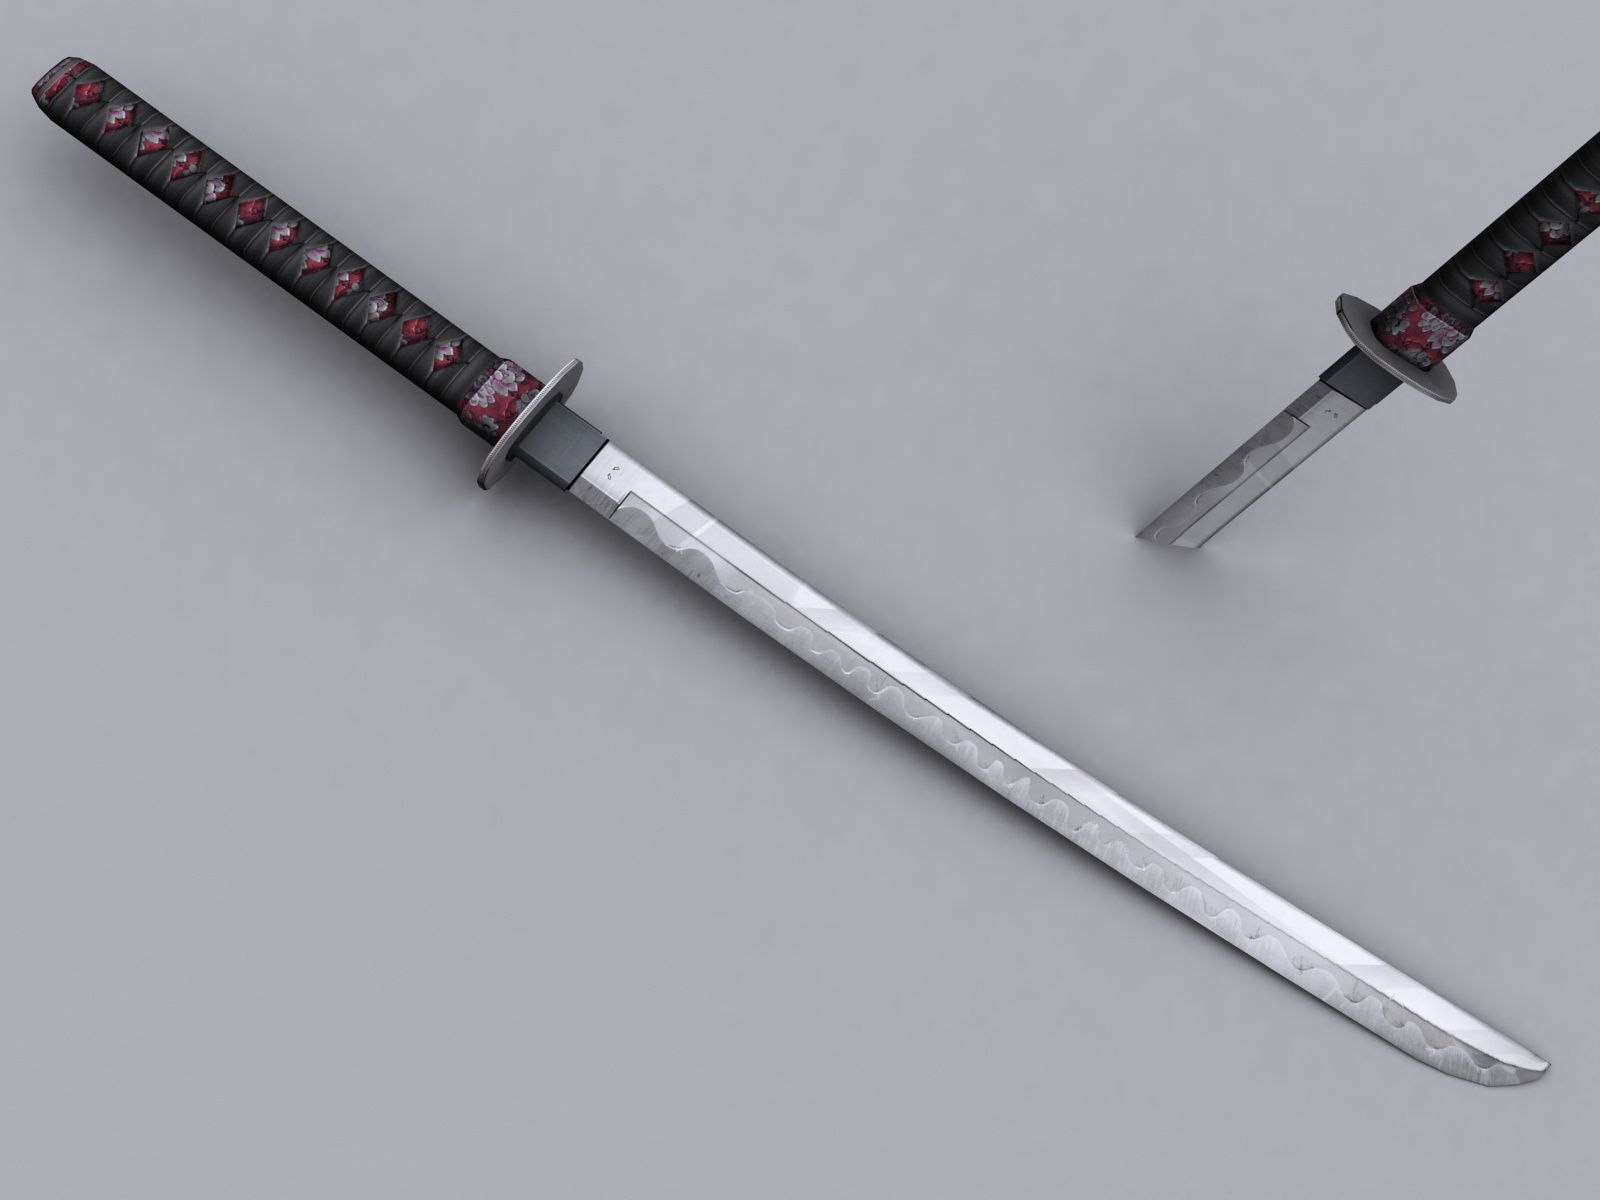 Japanese idea for a weapon